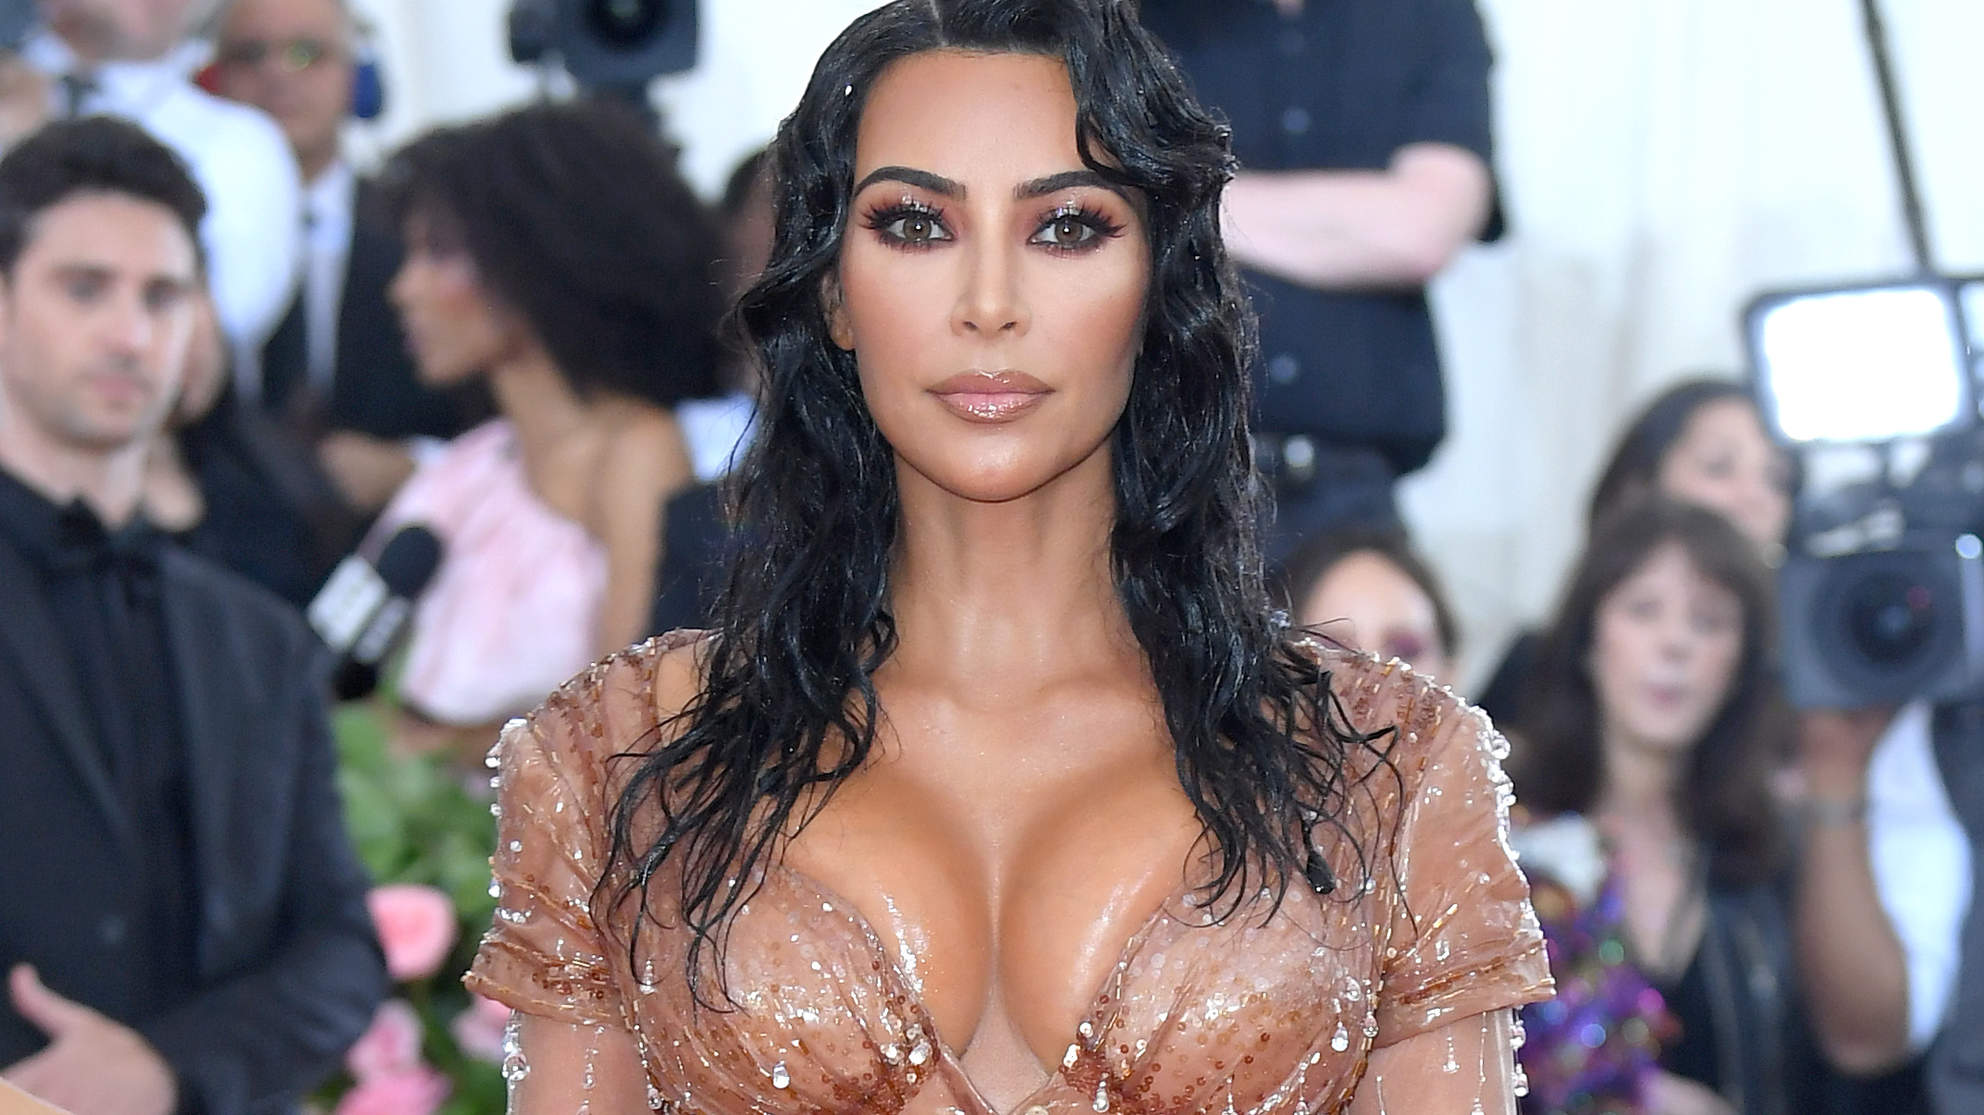 Kim Kardashian Deletes First Photo of Baby Psalm After Receiving Backlash from Mom Shamers